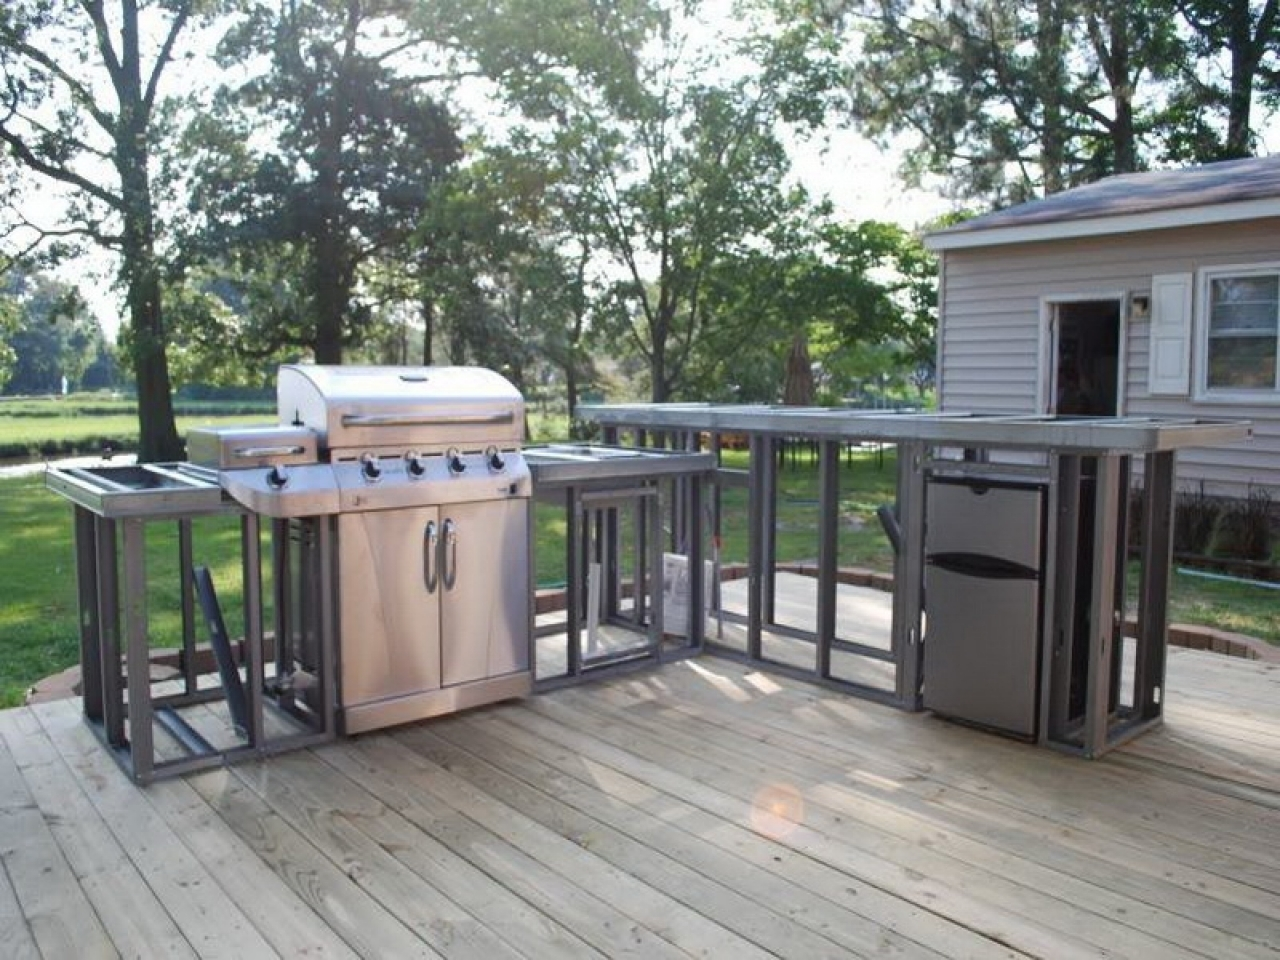 Home Decor How To Build An Outdoor Kitchen Plans Dining Benches Intended For Metal Frame Outdoor Kitchen Strong And Durable Metal Frame Outdoor Kitchen